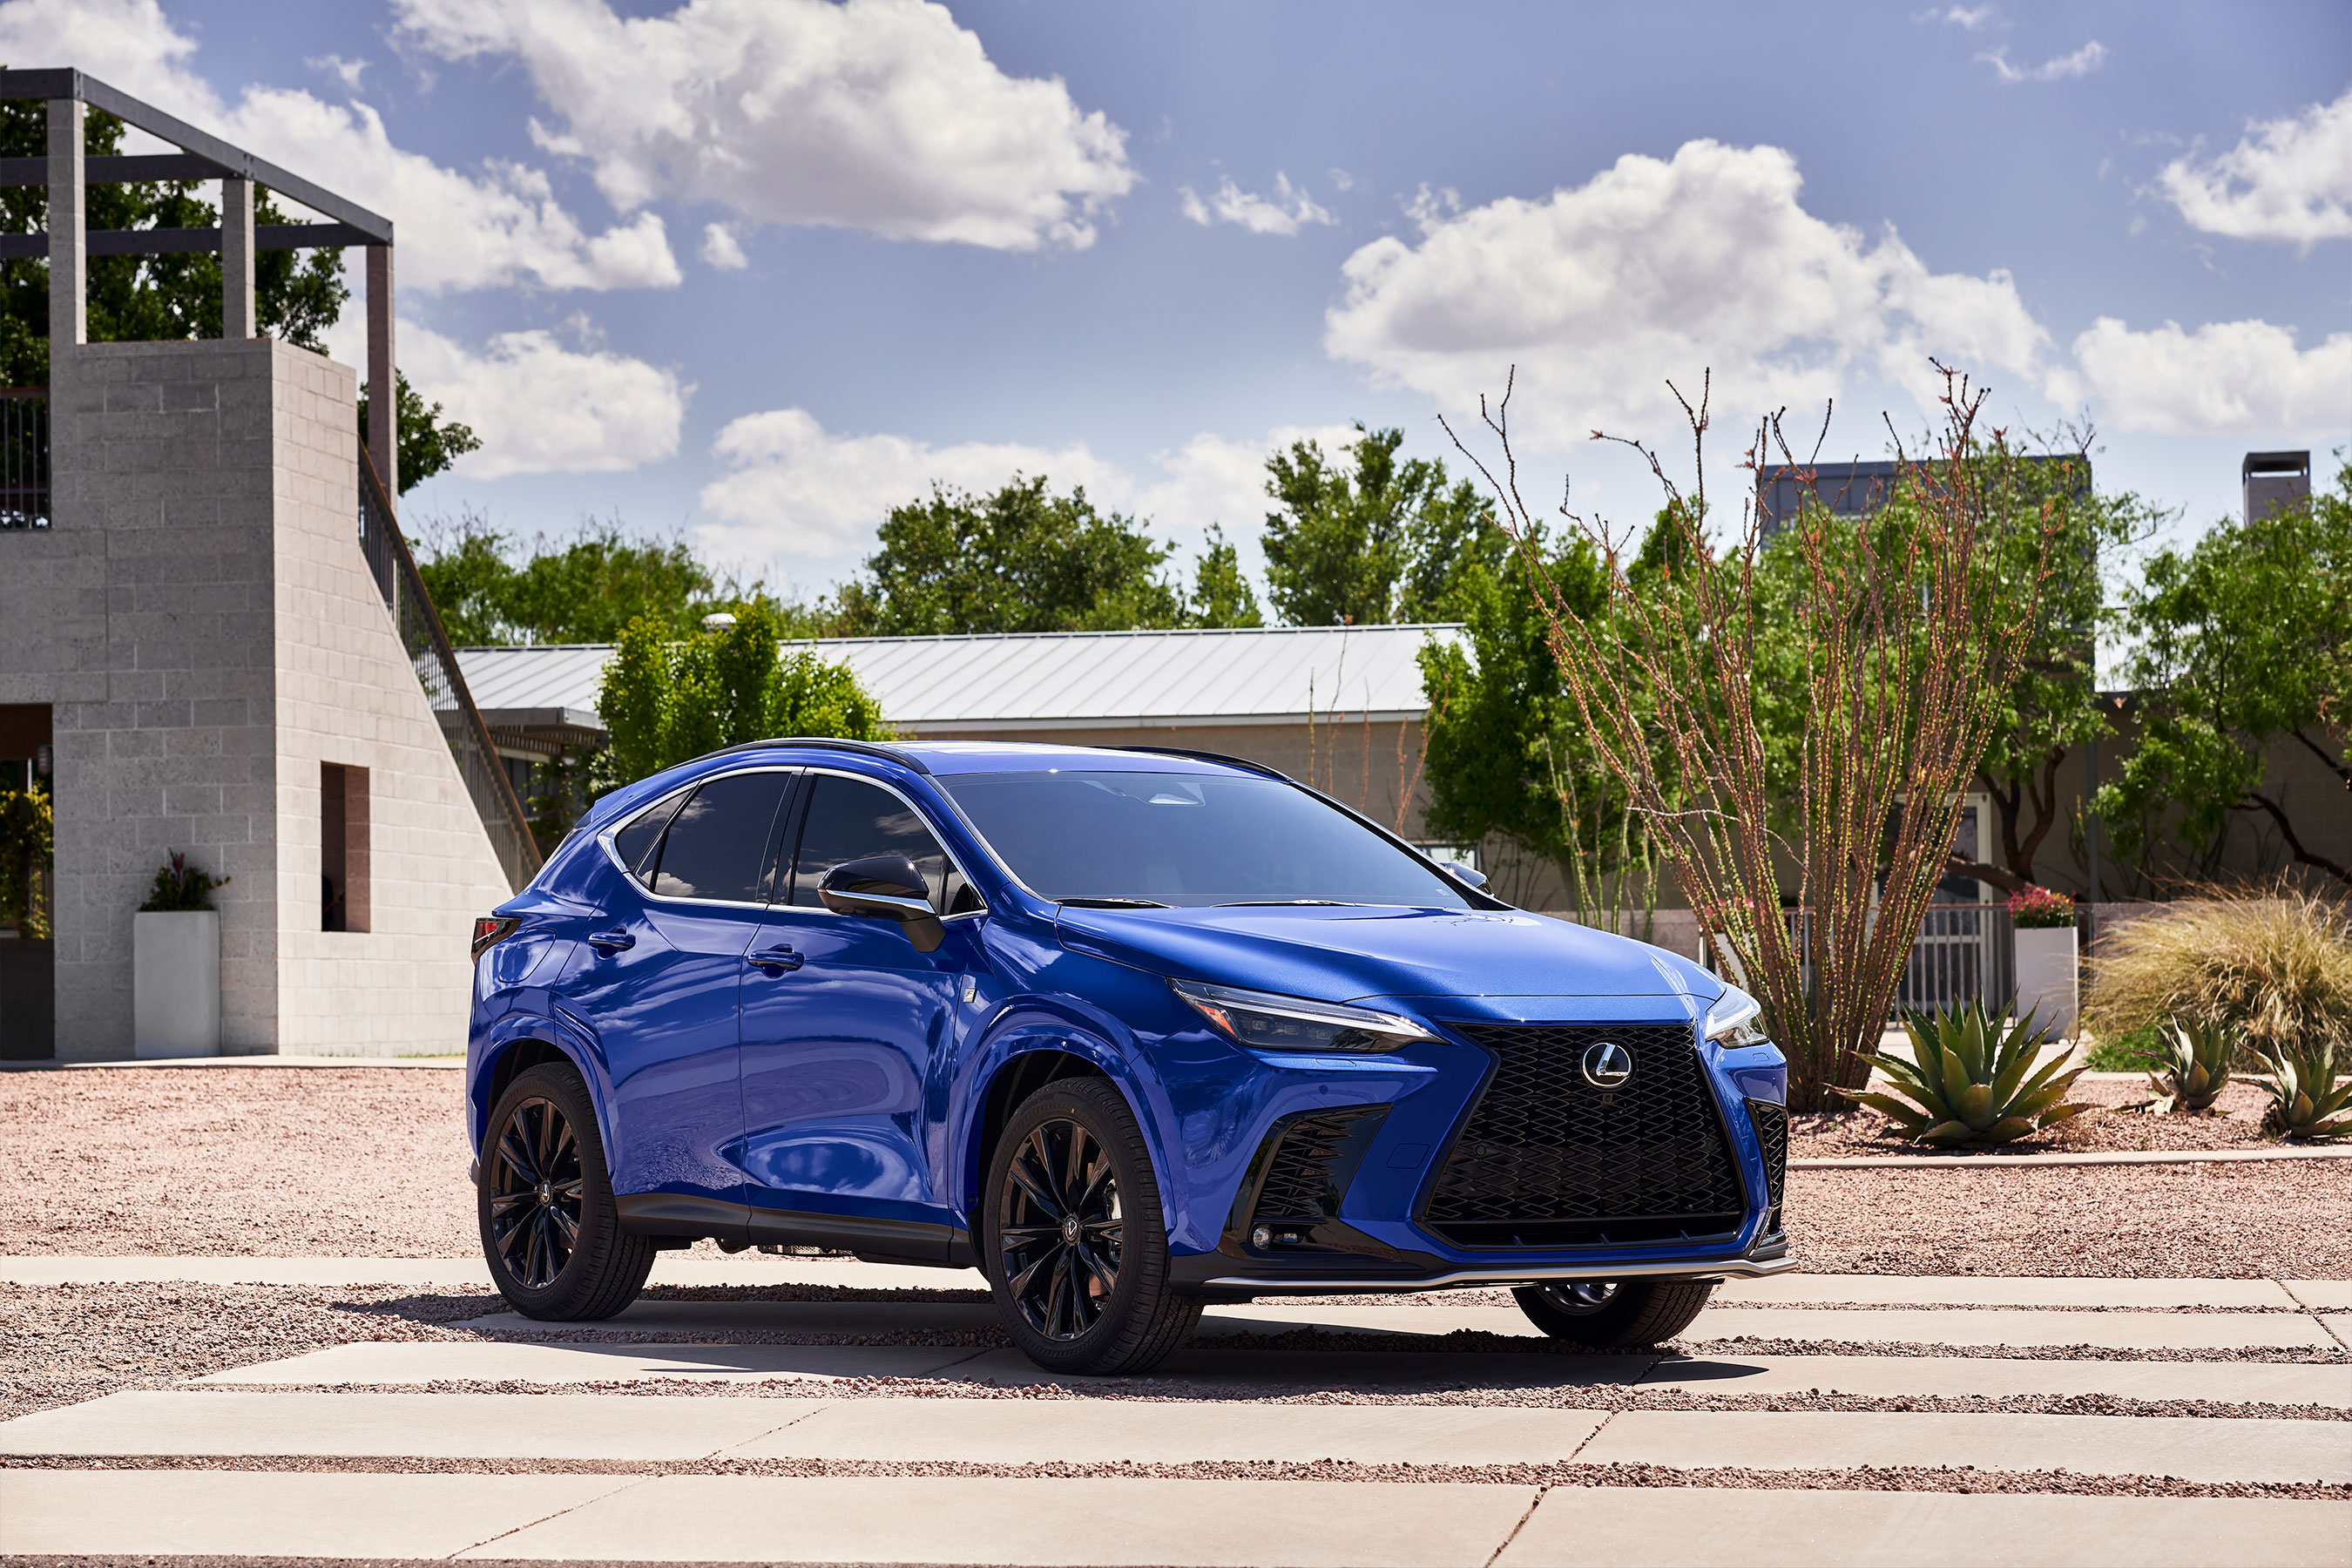 With a lower center of gravity and stronger stance, the all-new Lexus NX embodies powerful design, intuitive innovation and boundless utility.